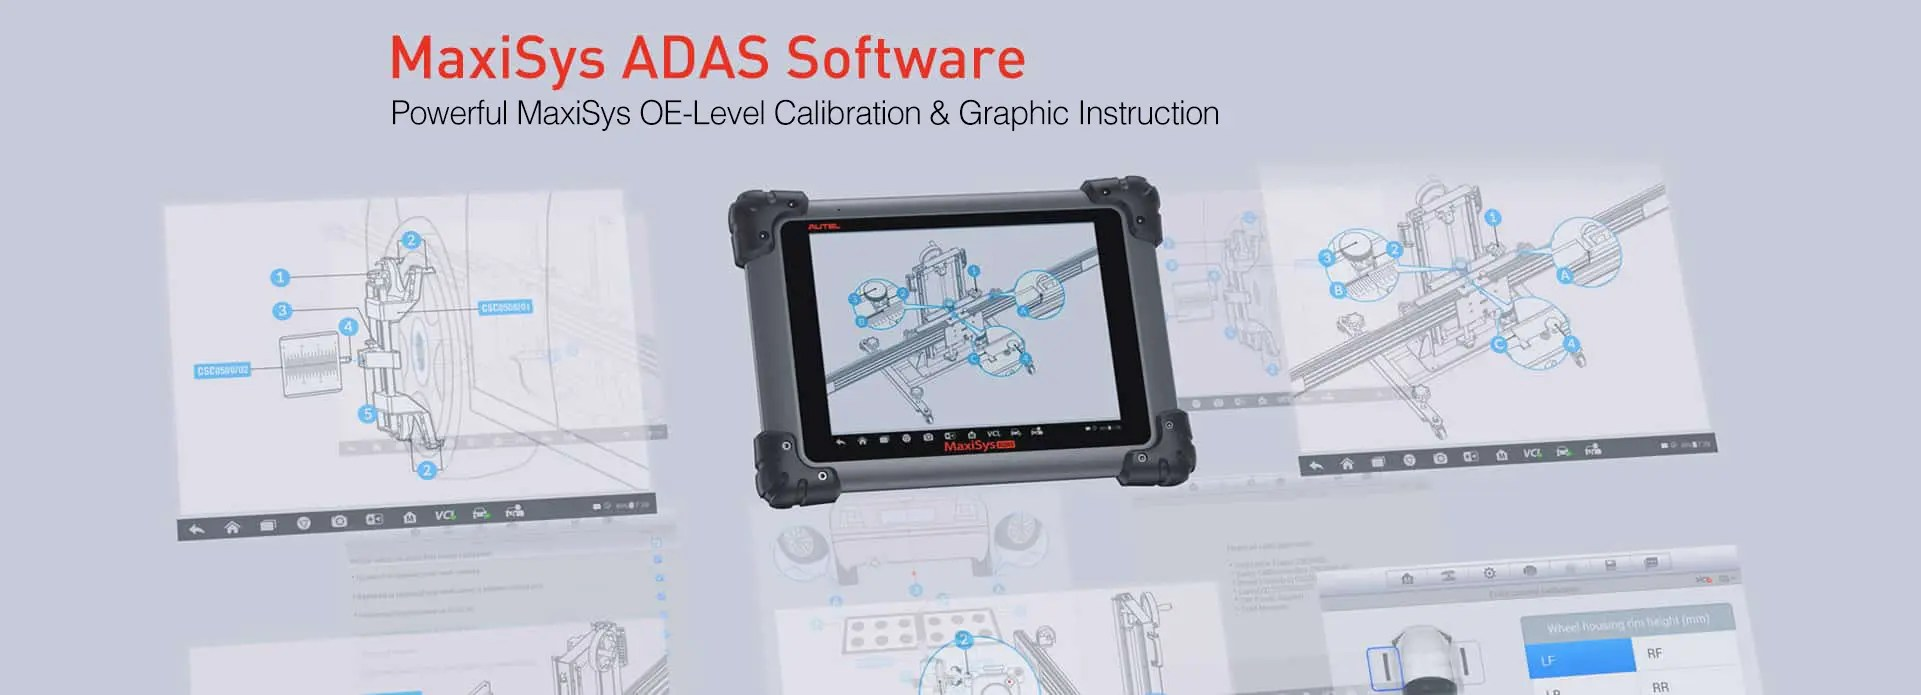 MaxiSys ADAS Software